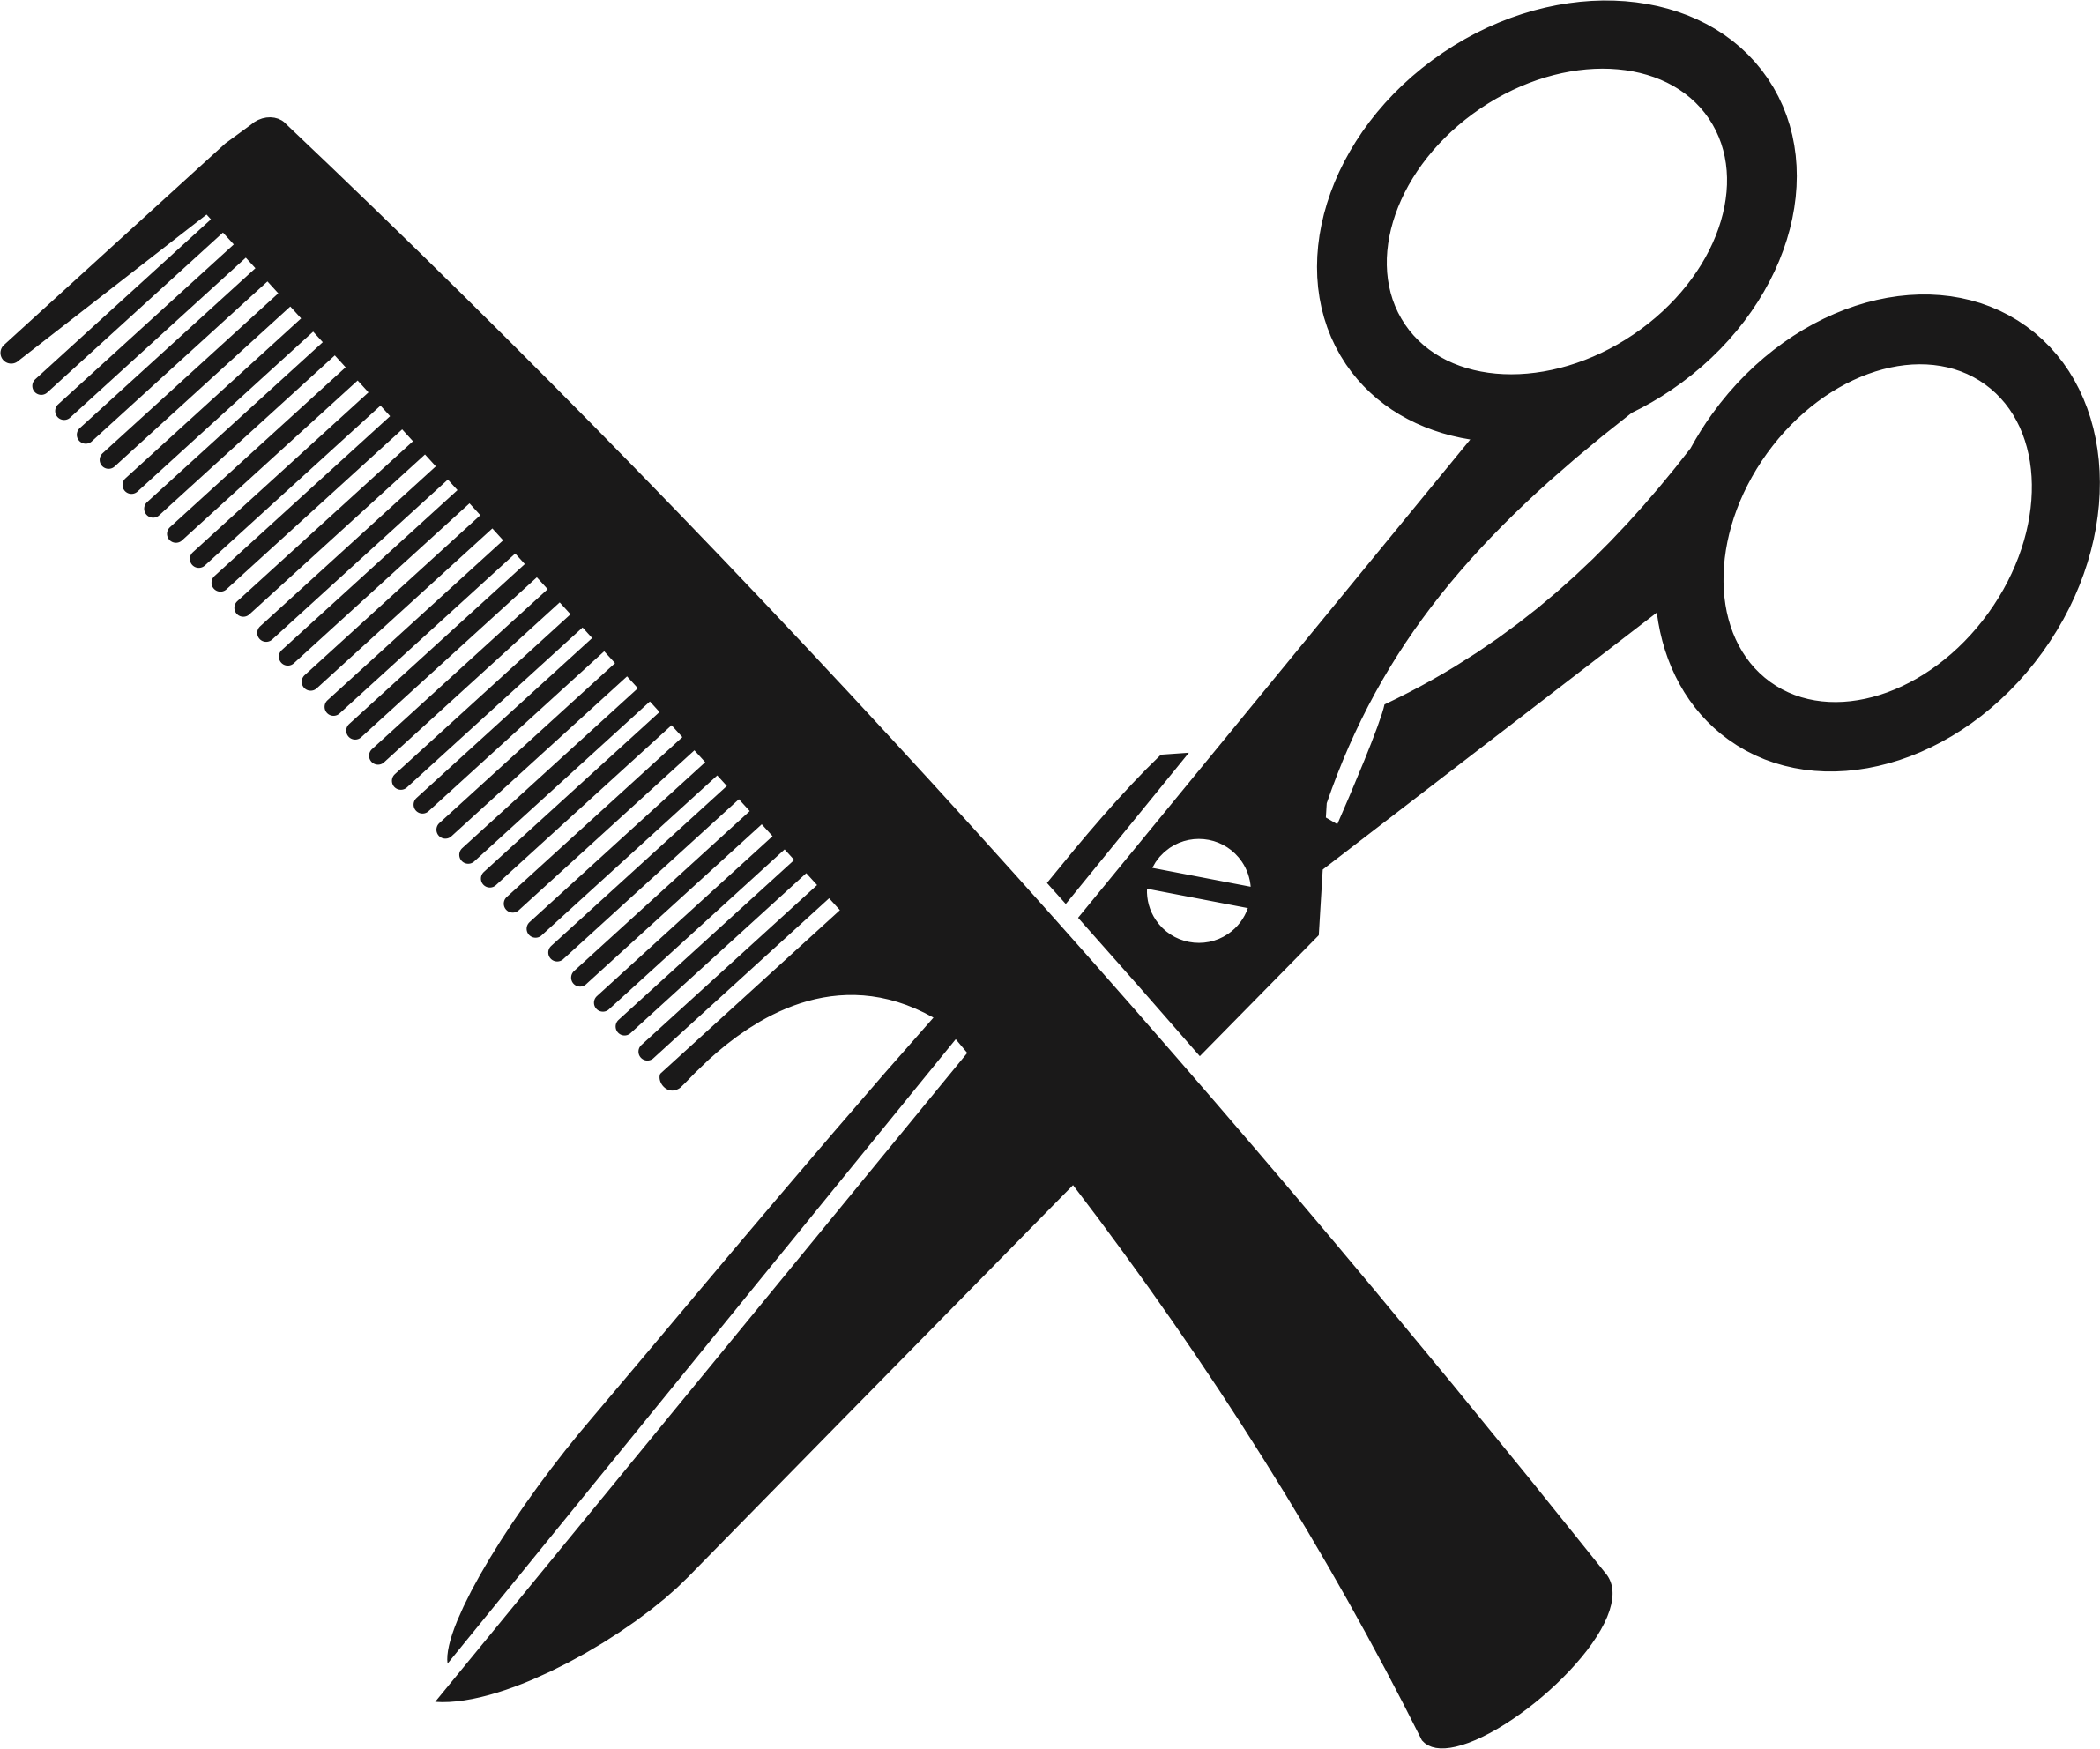 Scissors and comb png. Barber beauty parlour download